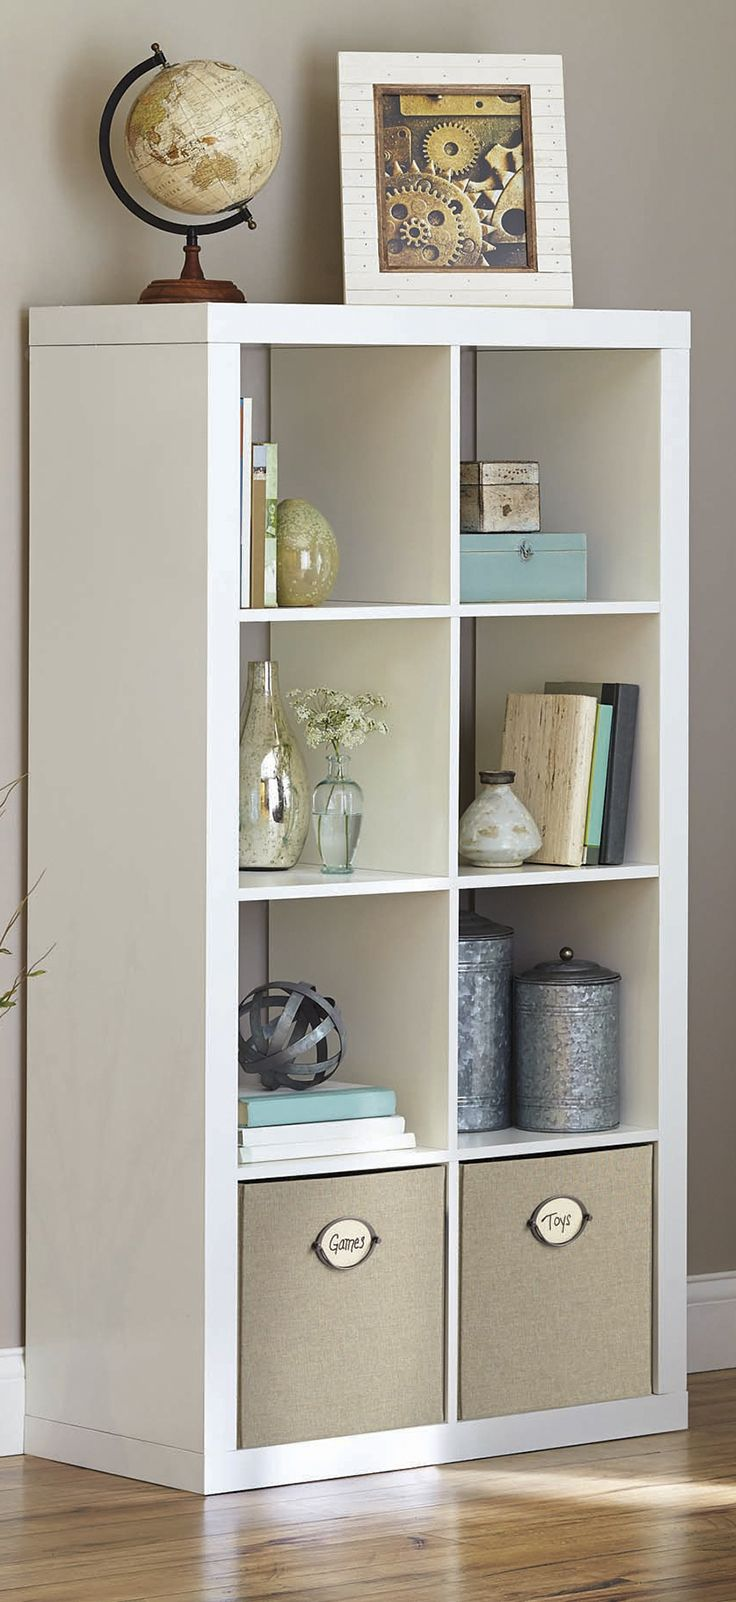 Best 25+ Cube Storage Ideas On Pinterest | Cube Shelves, Ikea Storage Cubes  And 4 Cube Organizer